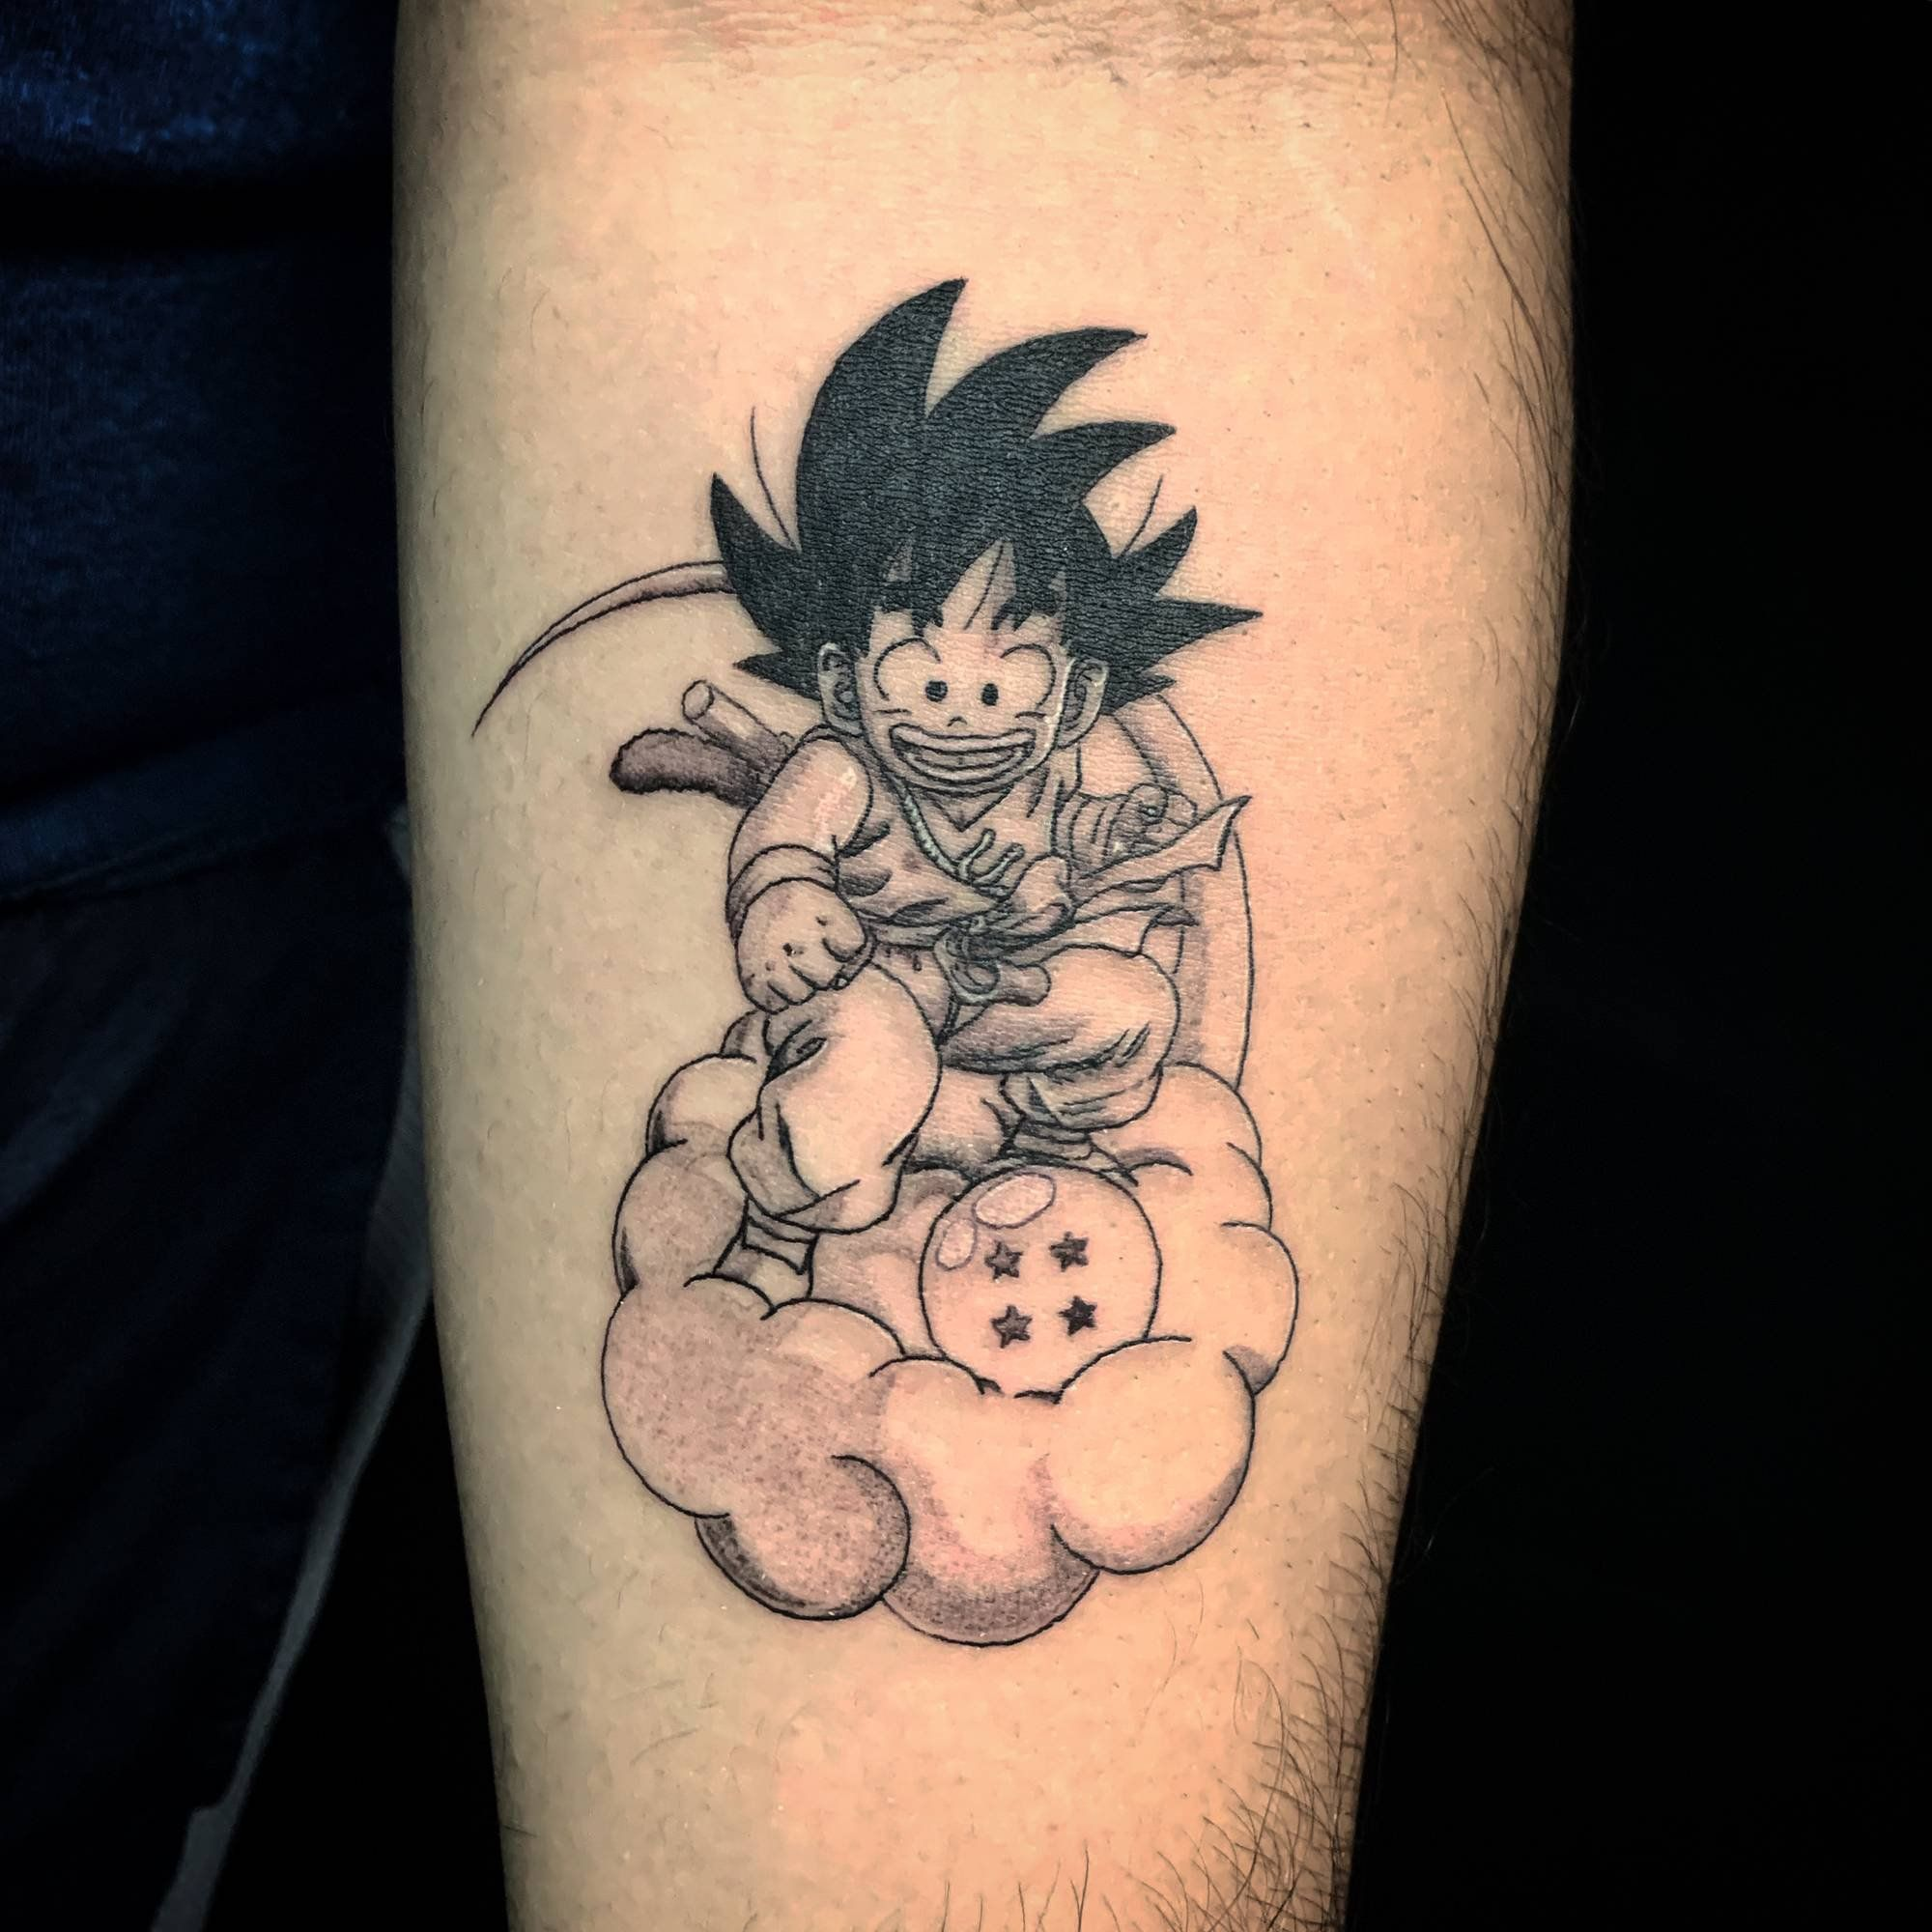 First tattoo kid goku on nimbus by ray vazquez private